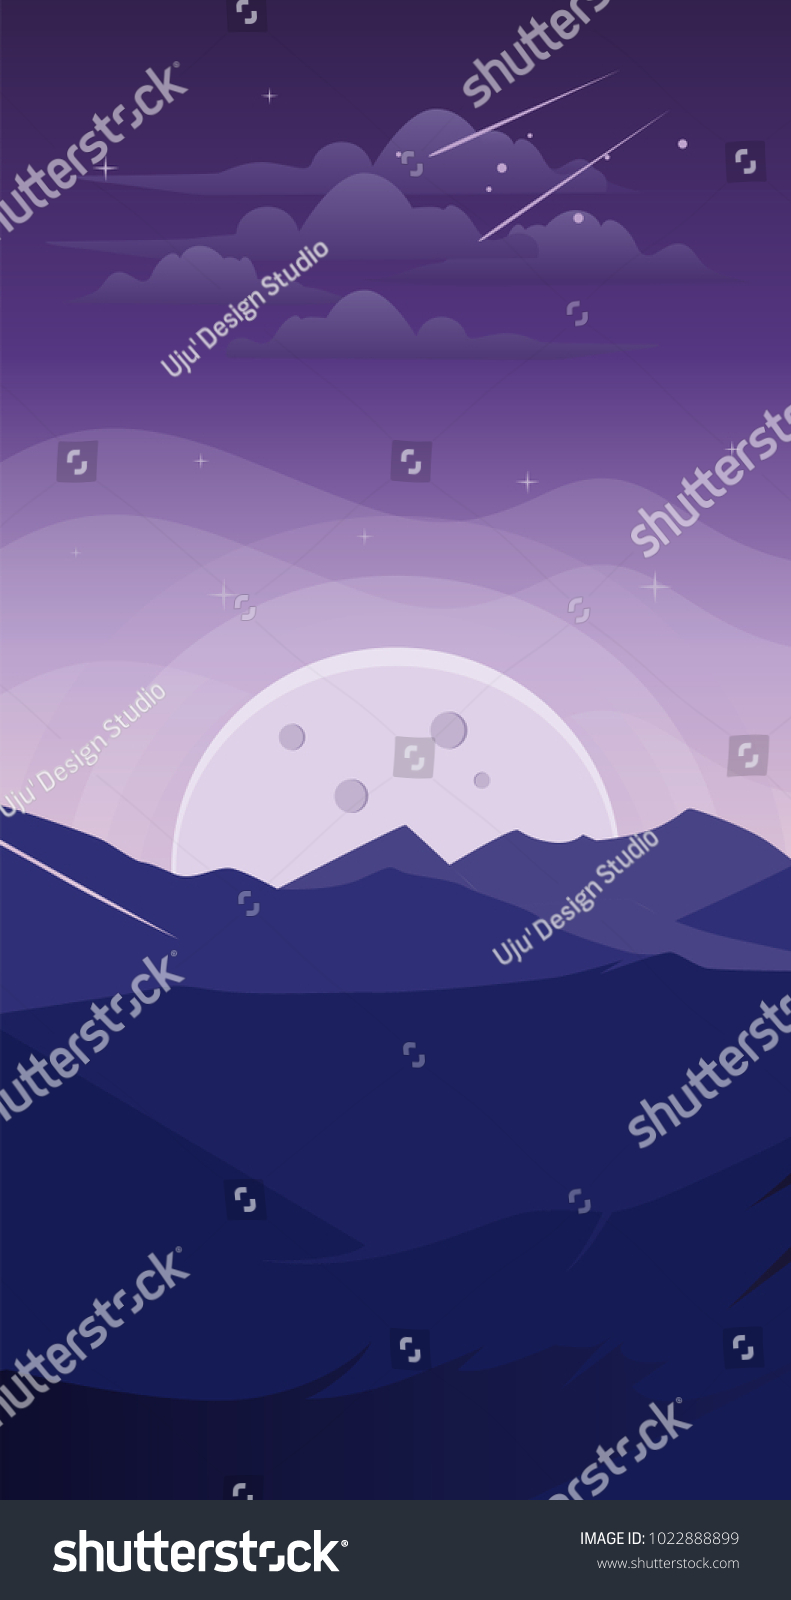 Cool Wallpaper Mountain Smartphone - stock-vector-landscape-mountain-at-night-fantasy-wallpaper-smartphone-background-android-iphone-1022888899  Picture_331129.jpg